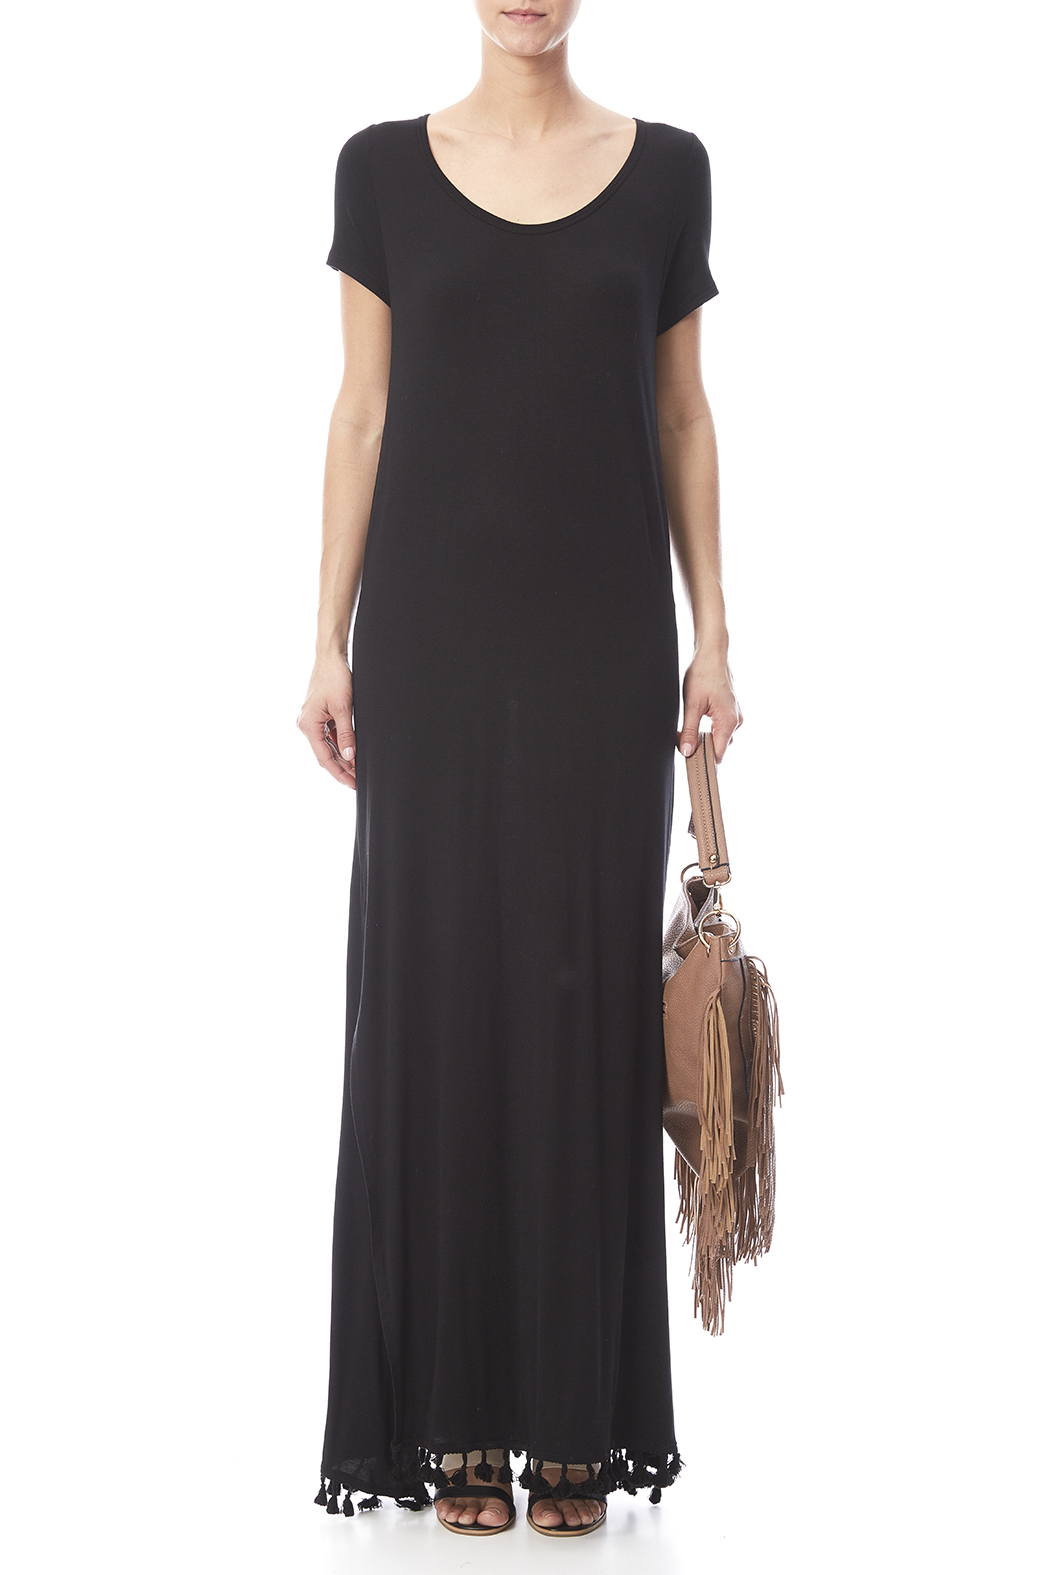 Umgee USA Side Split Maxi Dress - Front Cropped Image